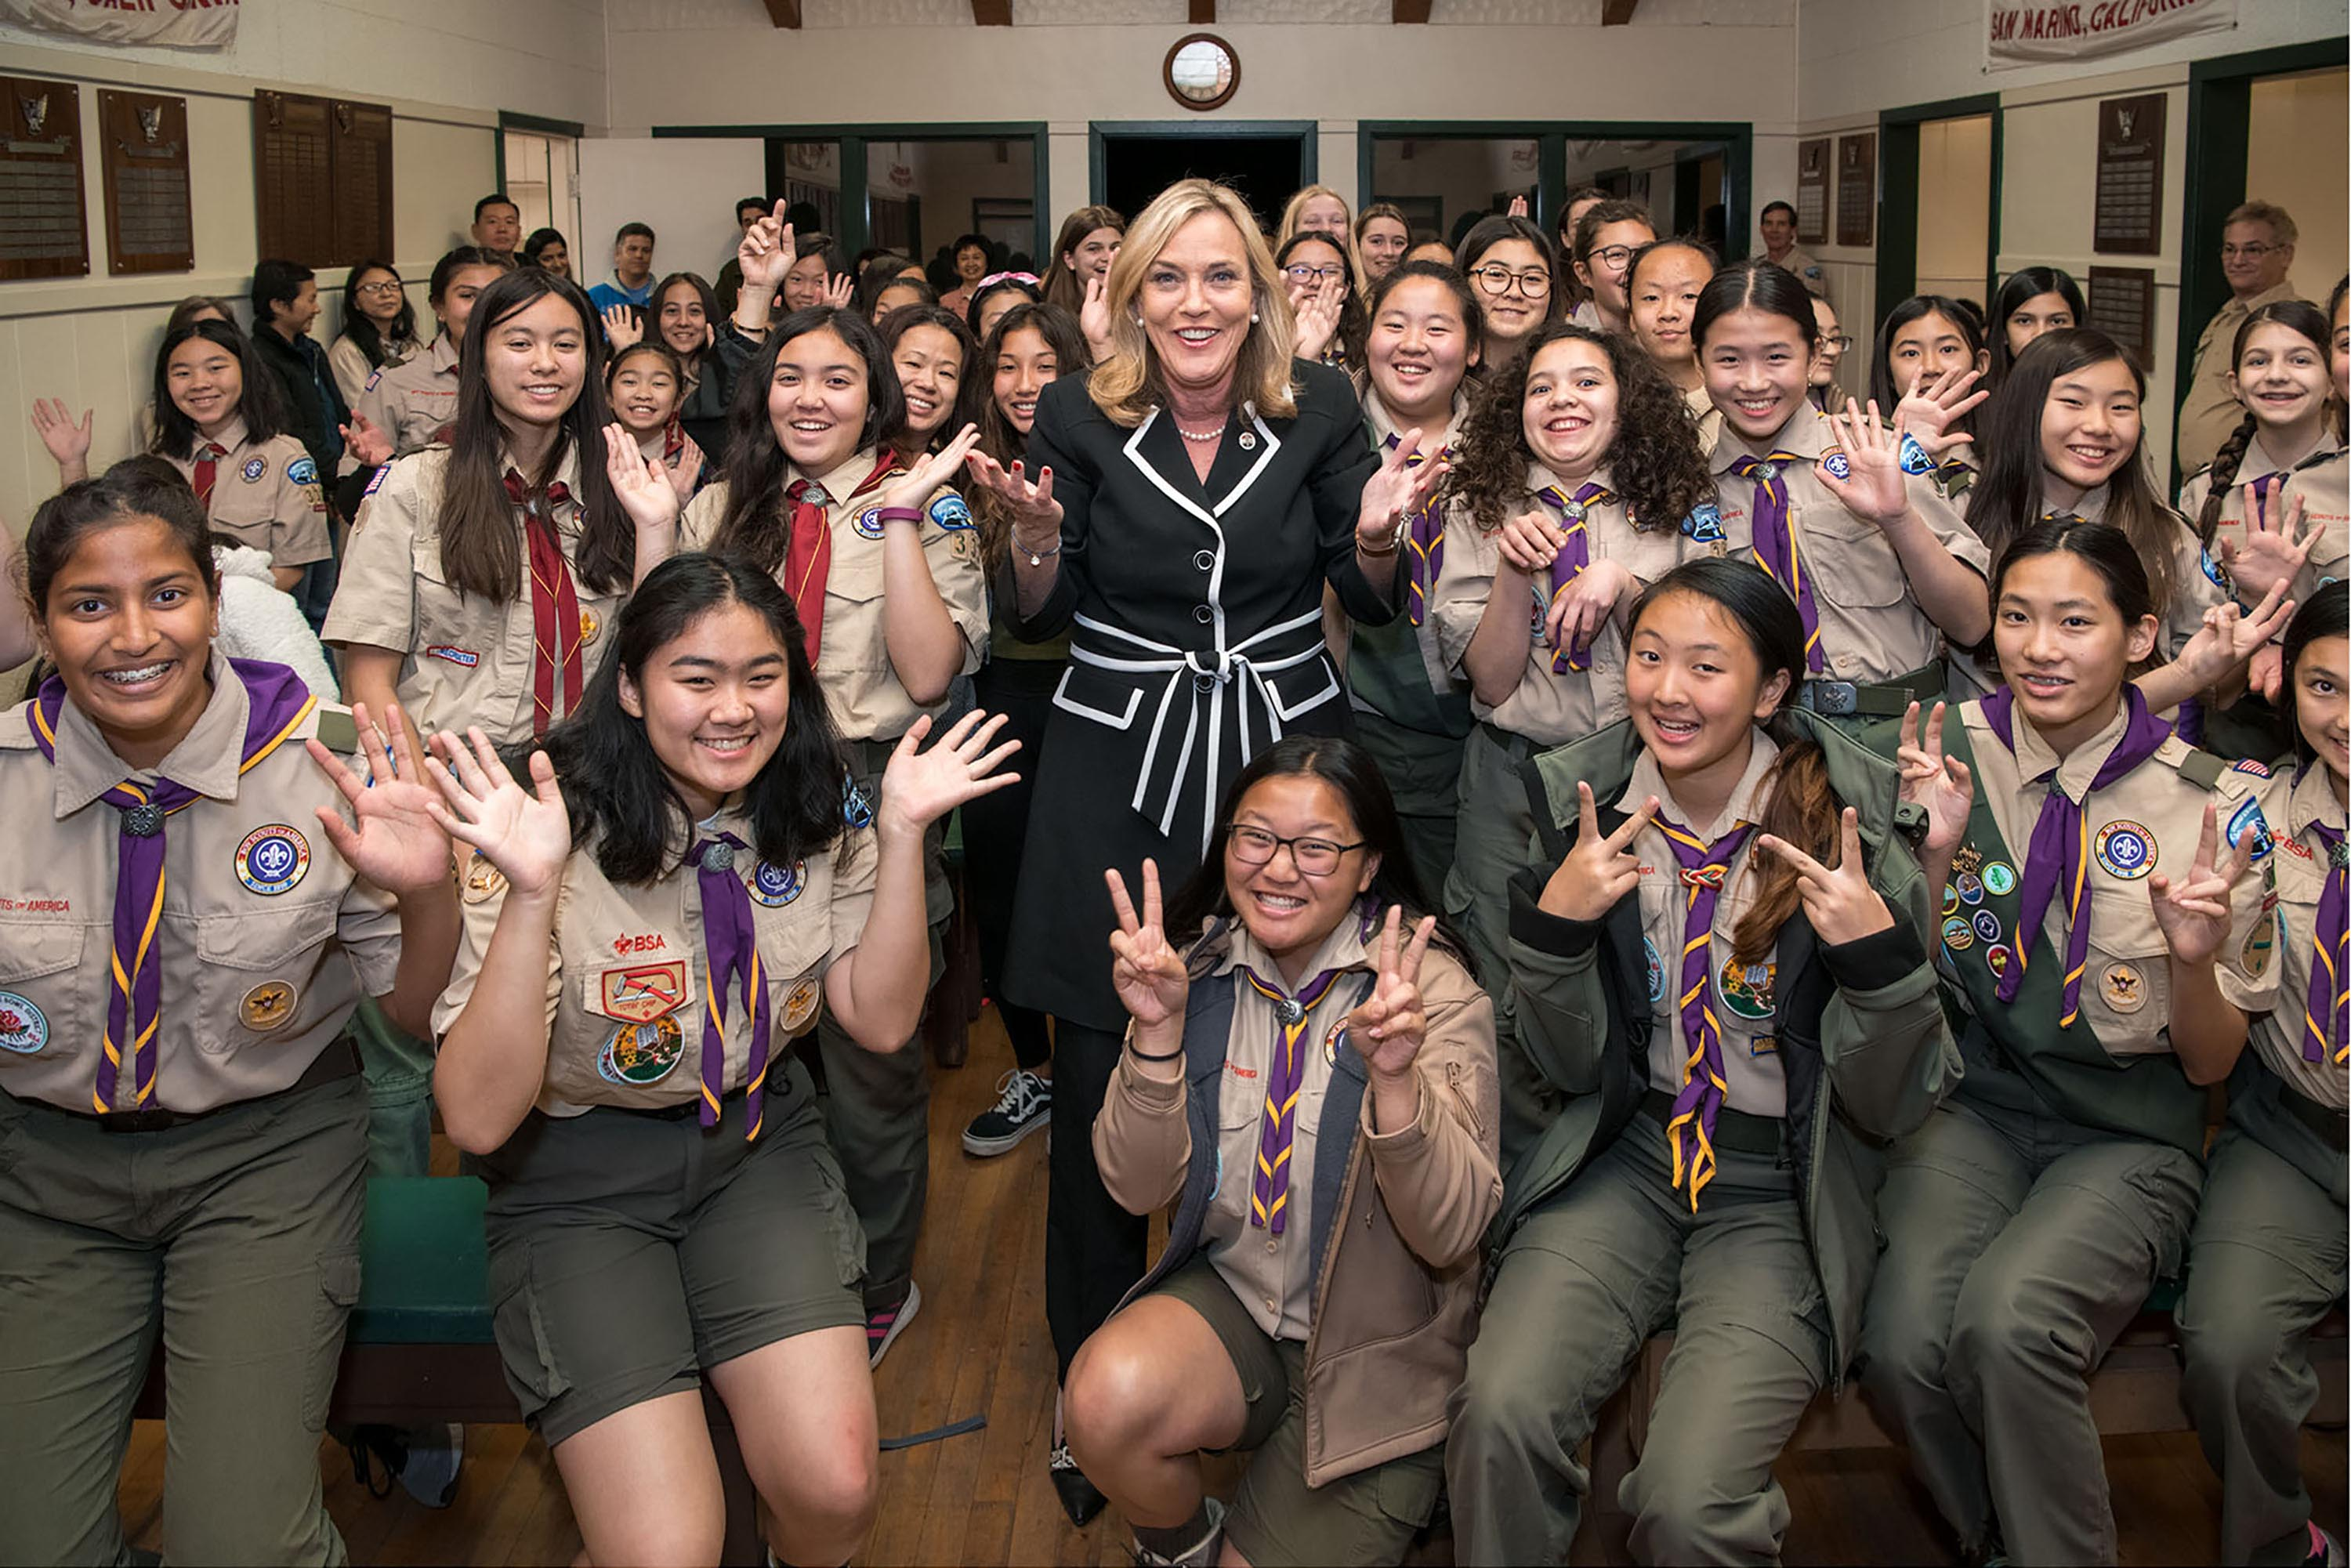 District 5 – Supervisor Kathryn Barger<br> <b>Feb. 19, 2020 – Boy Scouts of BSA Girls Troop 360. </b><br> <i>Photo by Michael Owen Baker / For the Board of Supervisors</i>